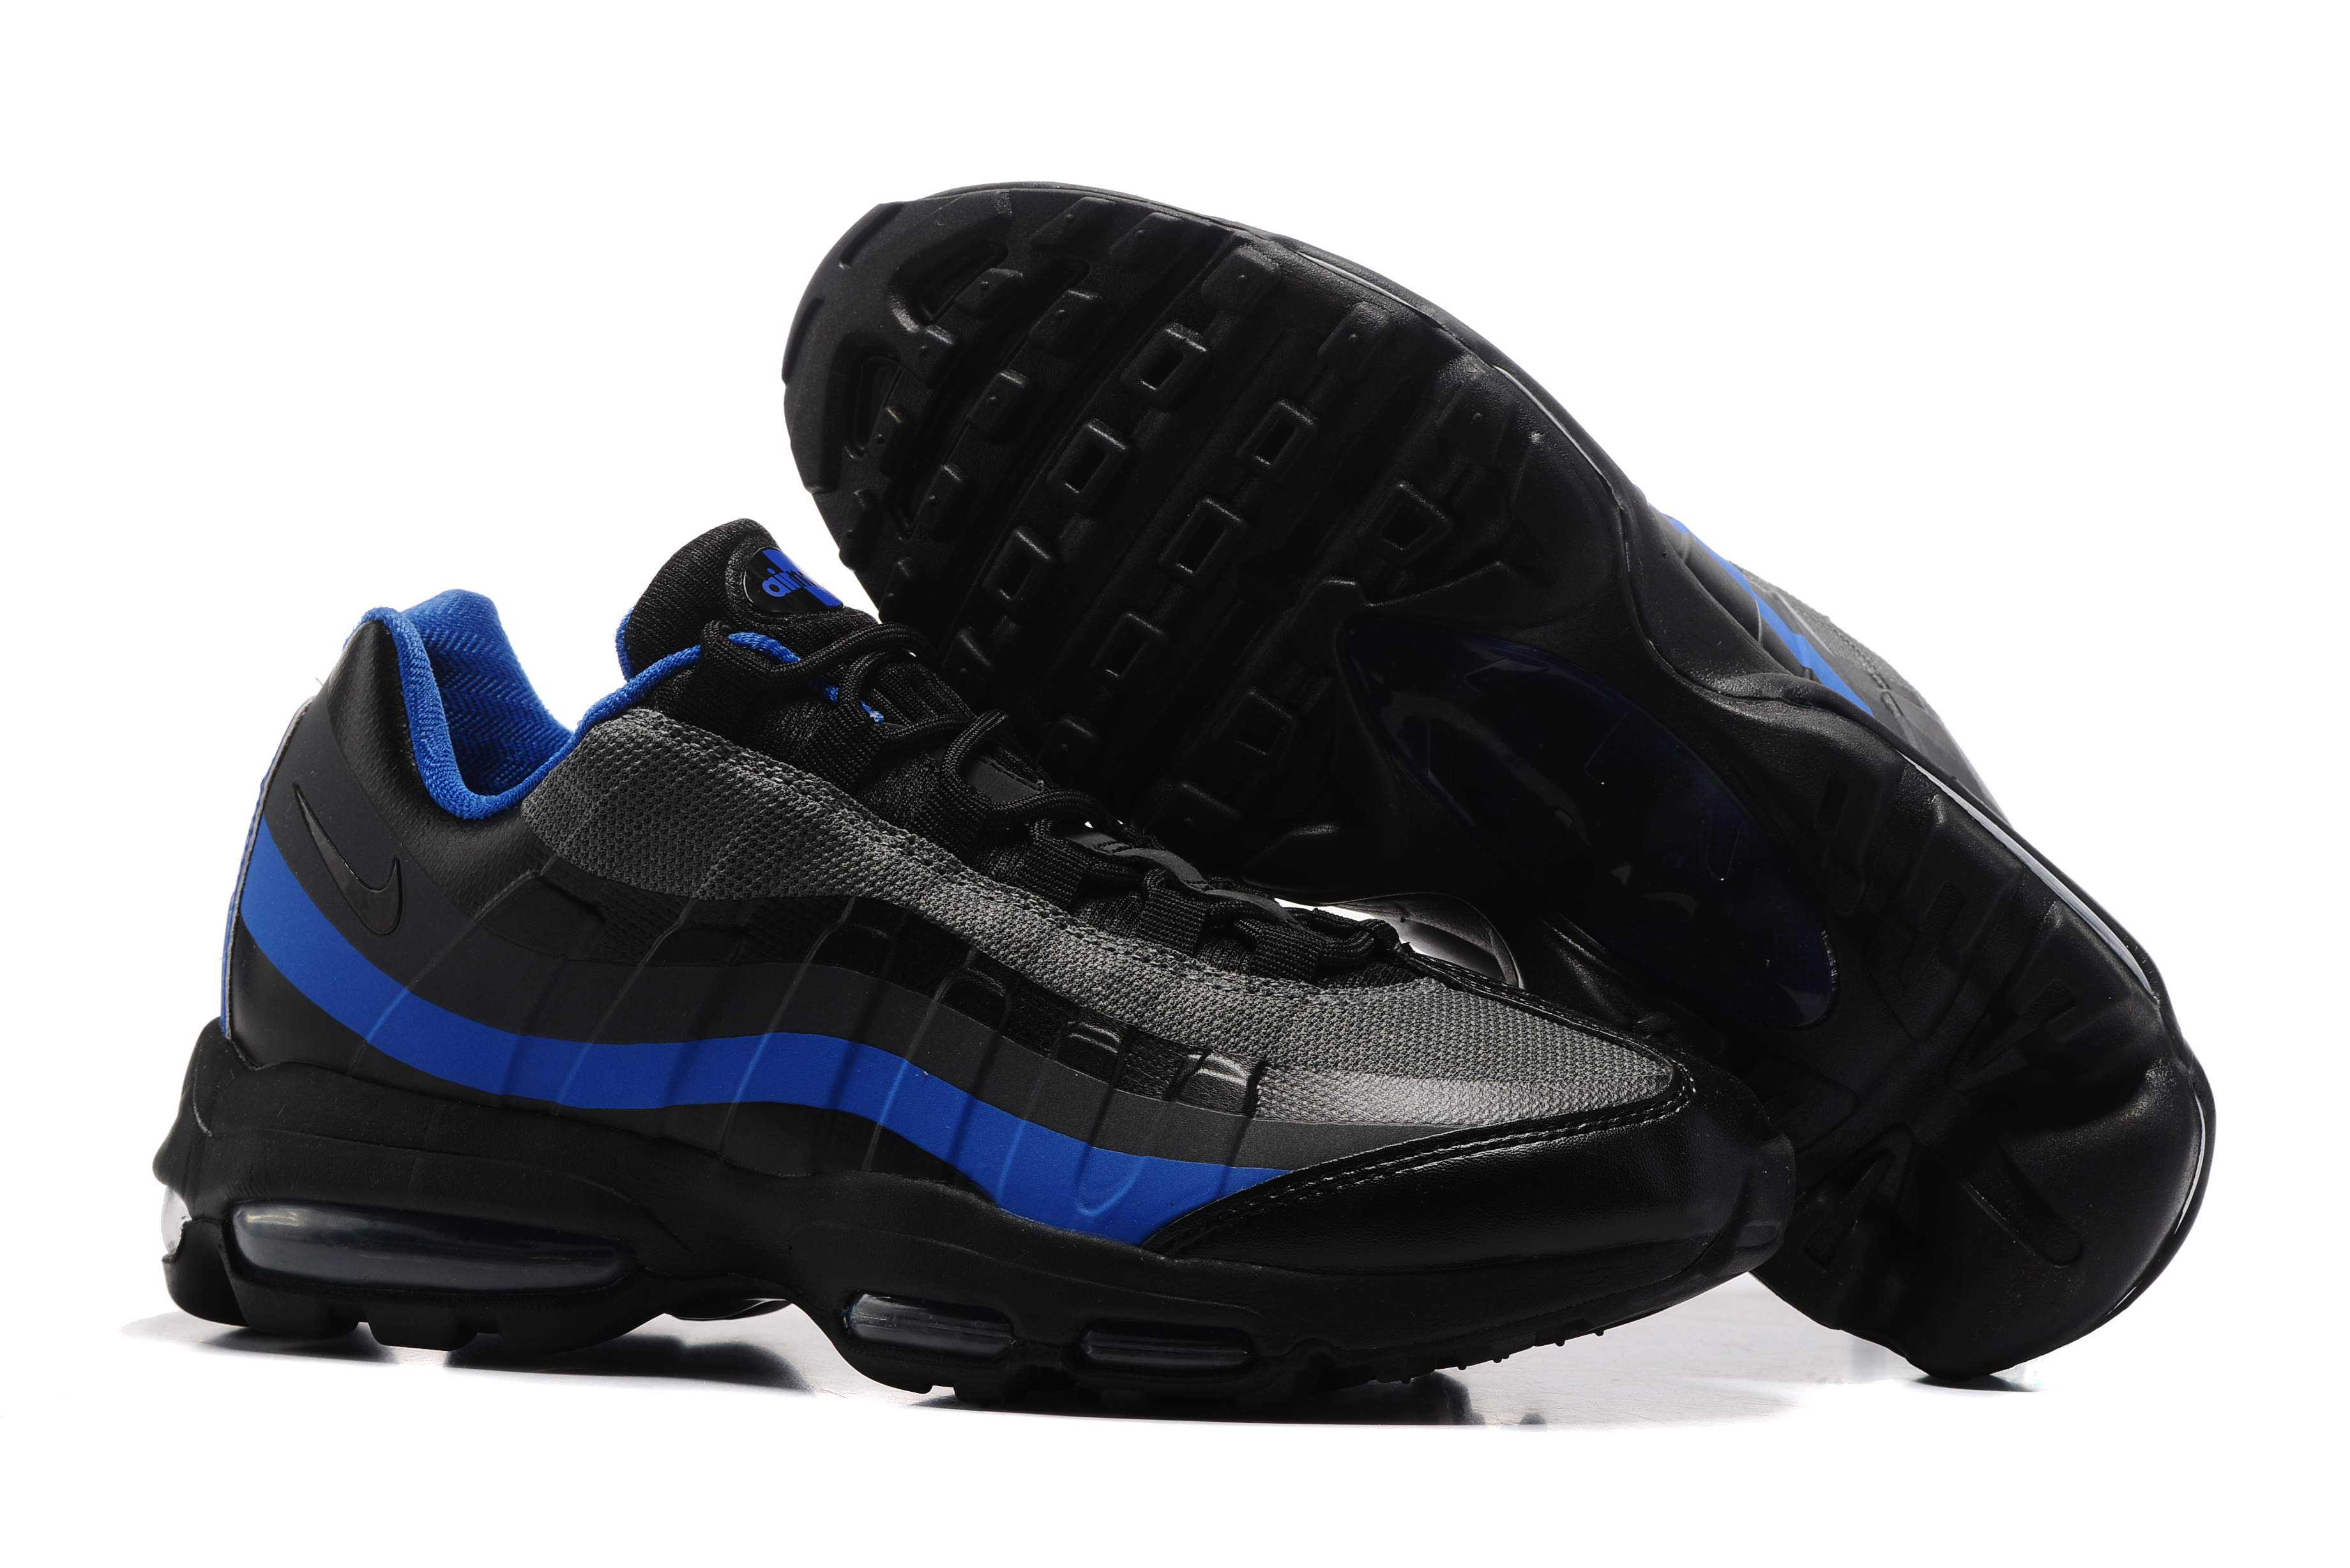 Nike Air Max 95 Black Blue Shoes